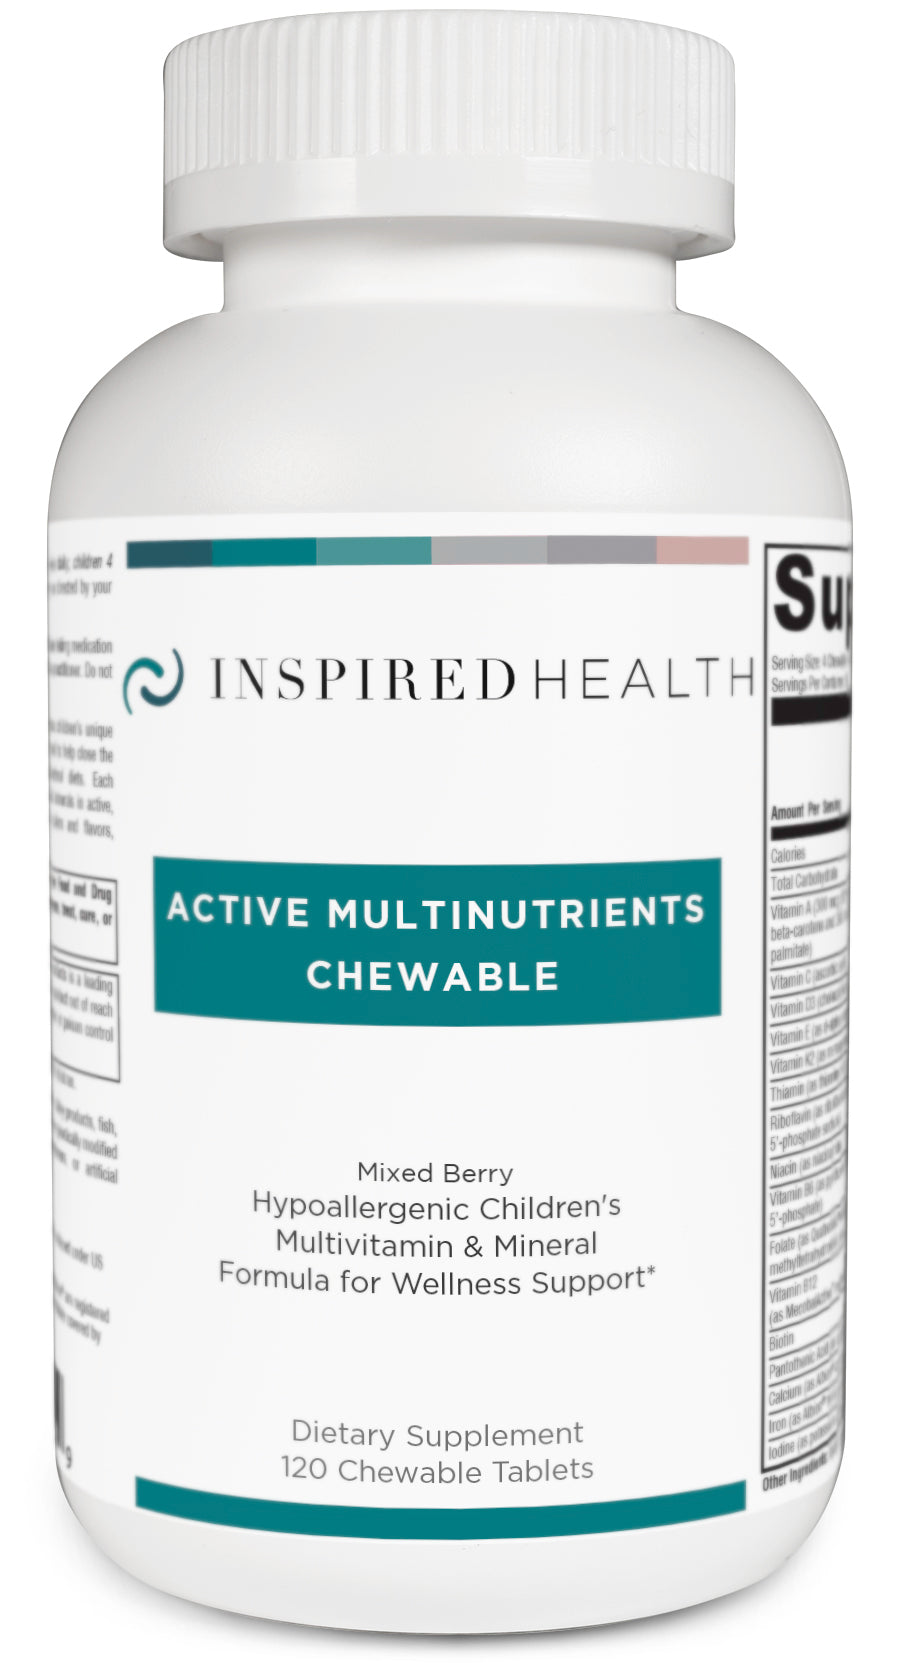 Active Multinutrients CHEWABLE